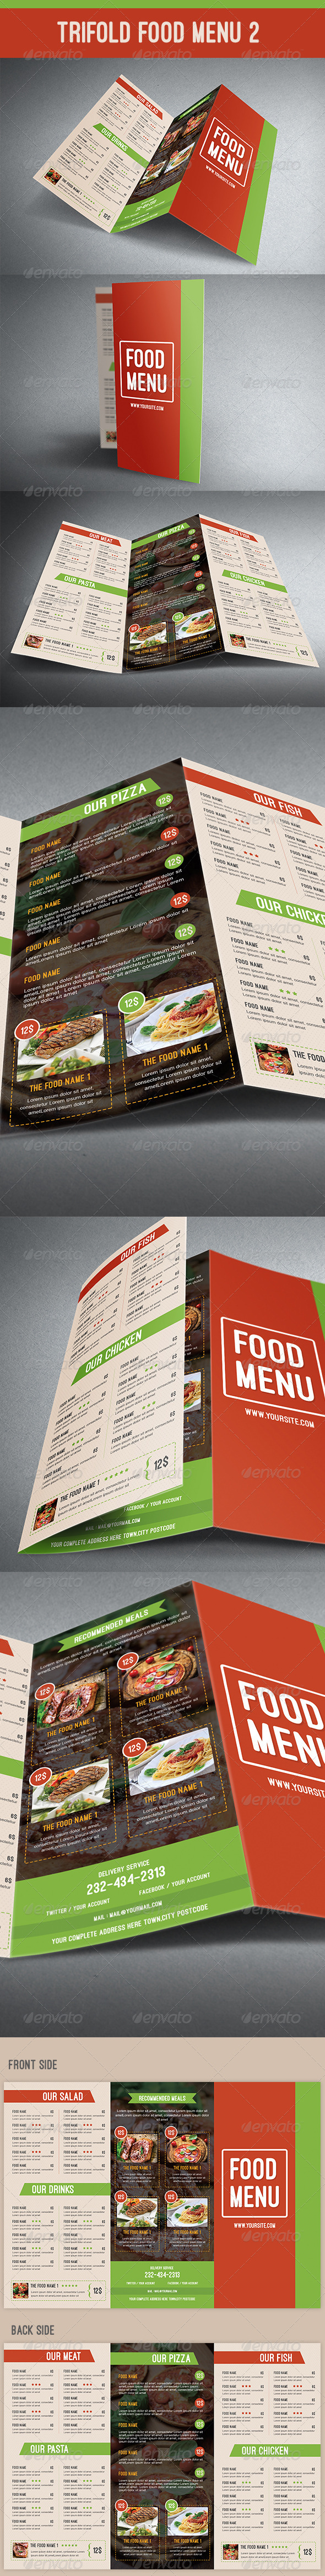 GraphicRiver Trifold Food Menu 2 8166695